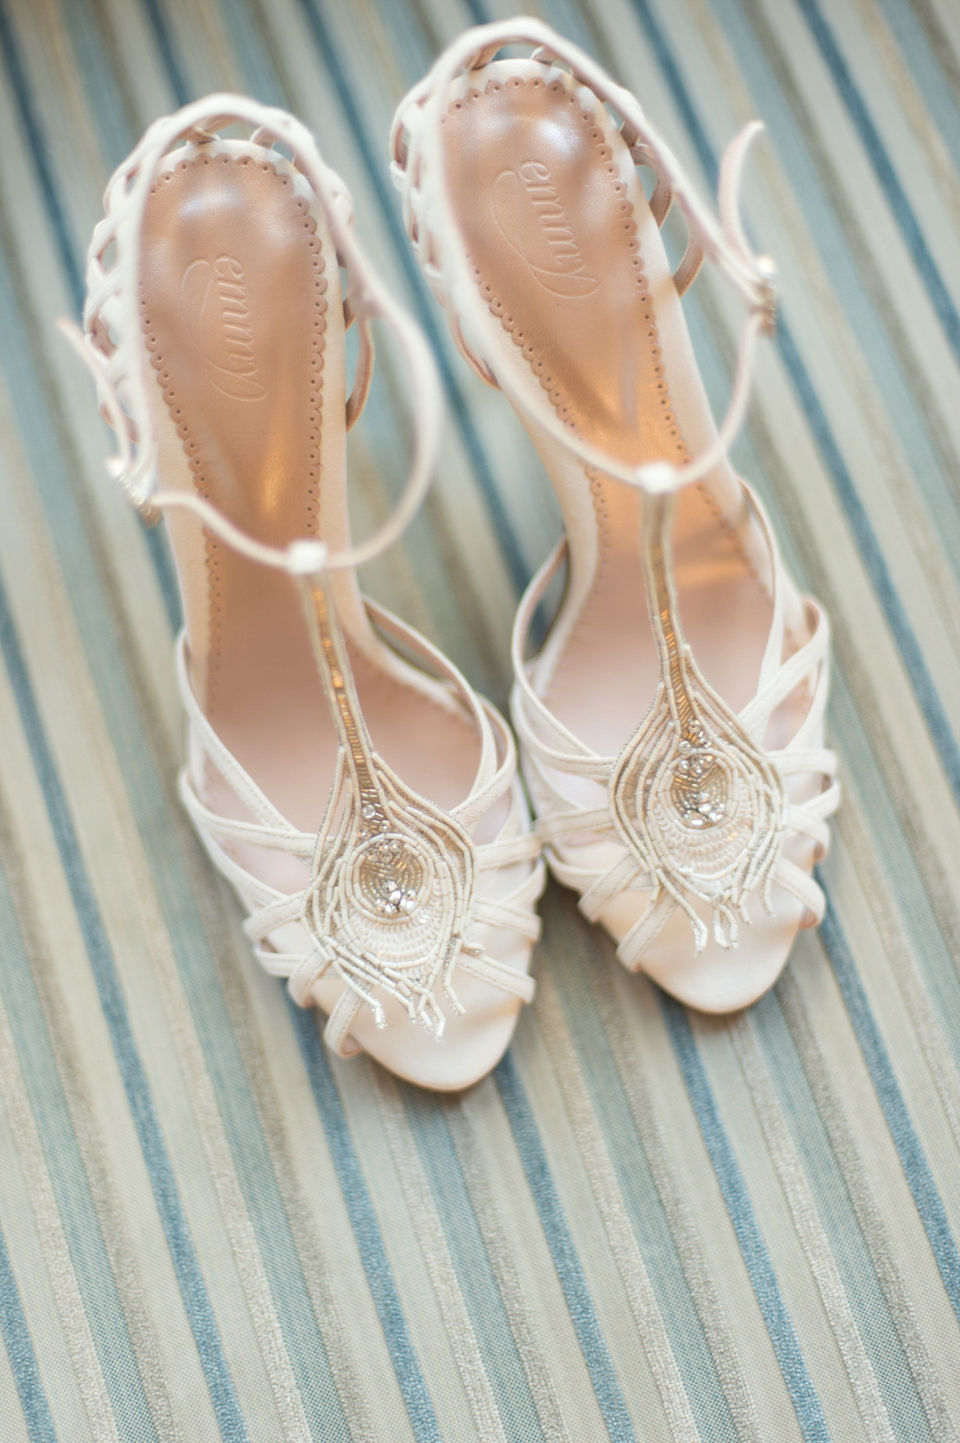 simple wedding shoes the cancello collection by emmy my dress 174 uk 7524